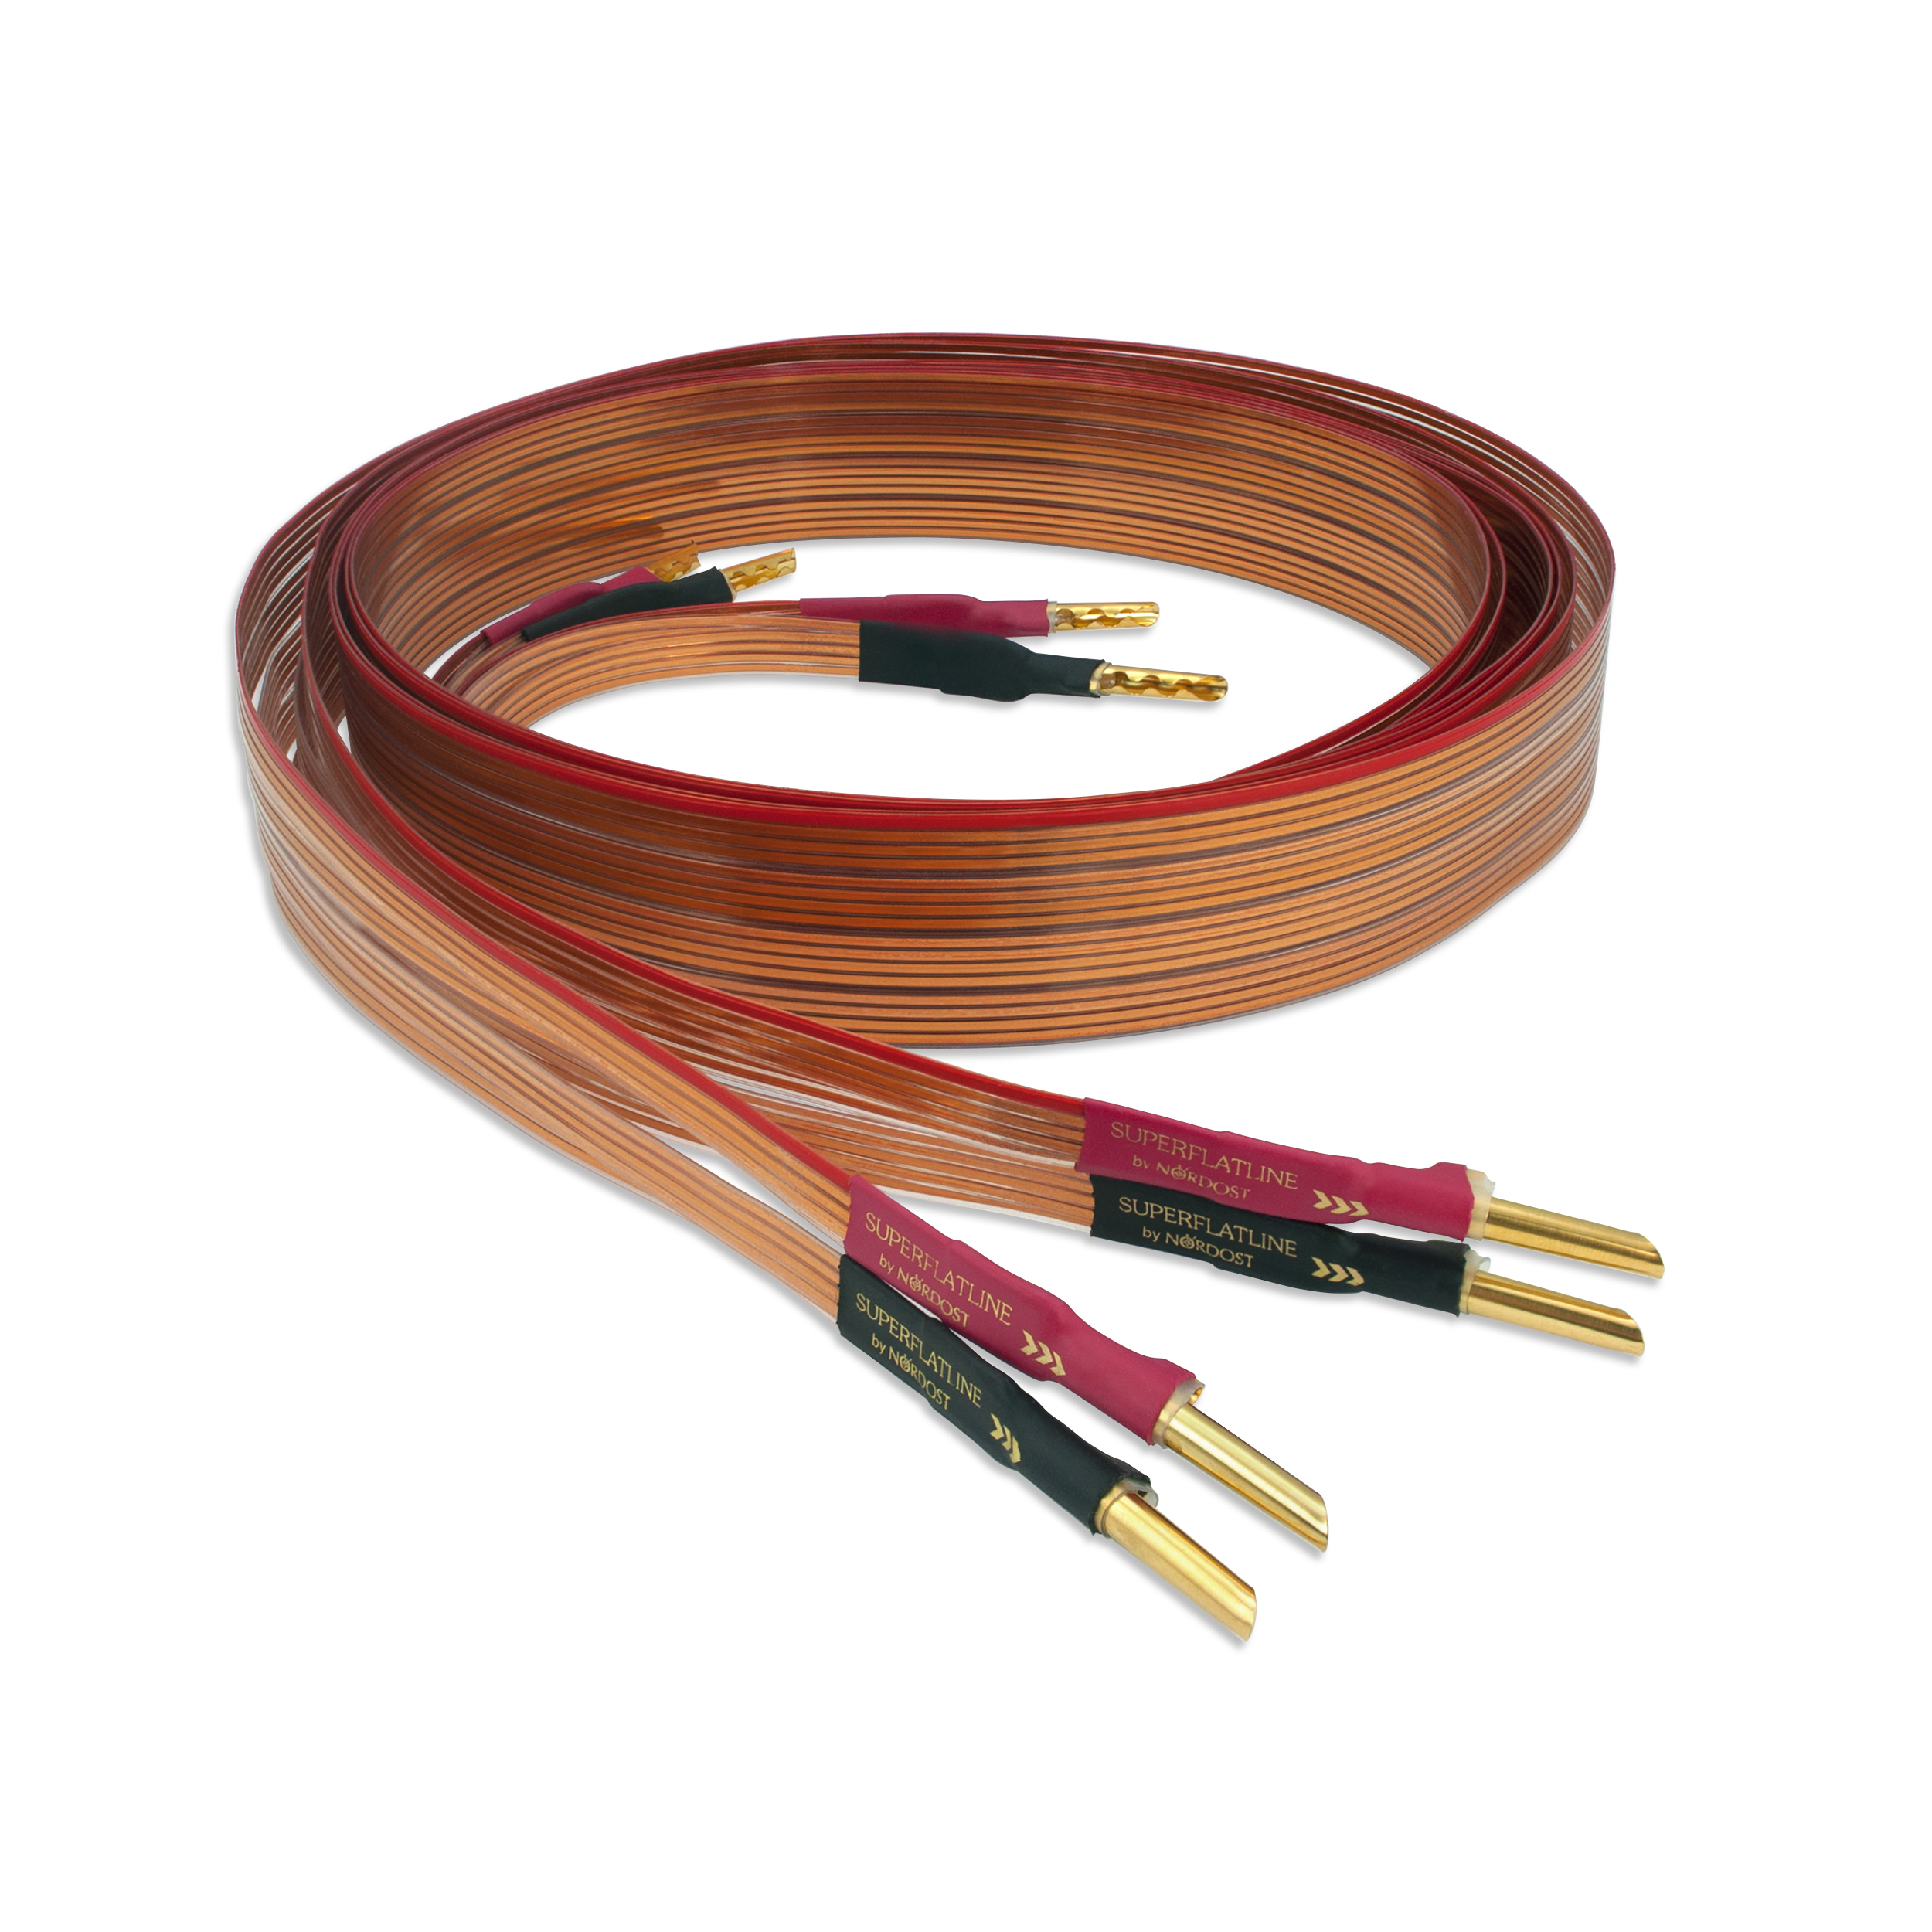 Nordost Reintroduce the SuperFlatline Speaker Cable - Positive Feedback